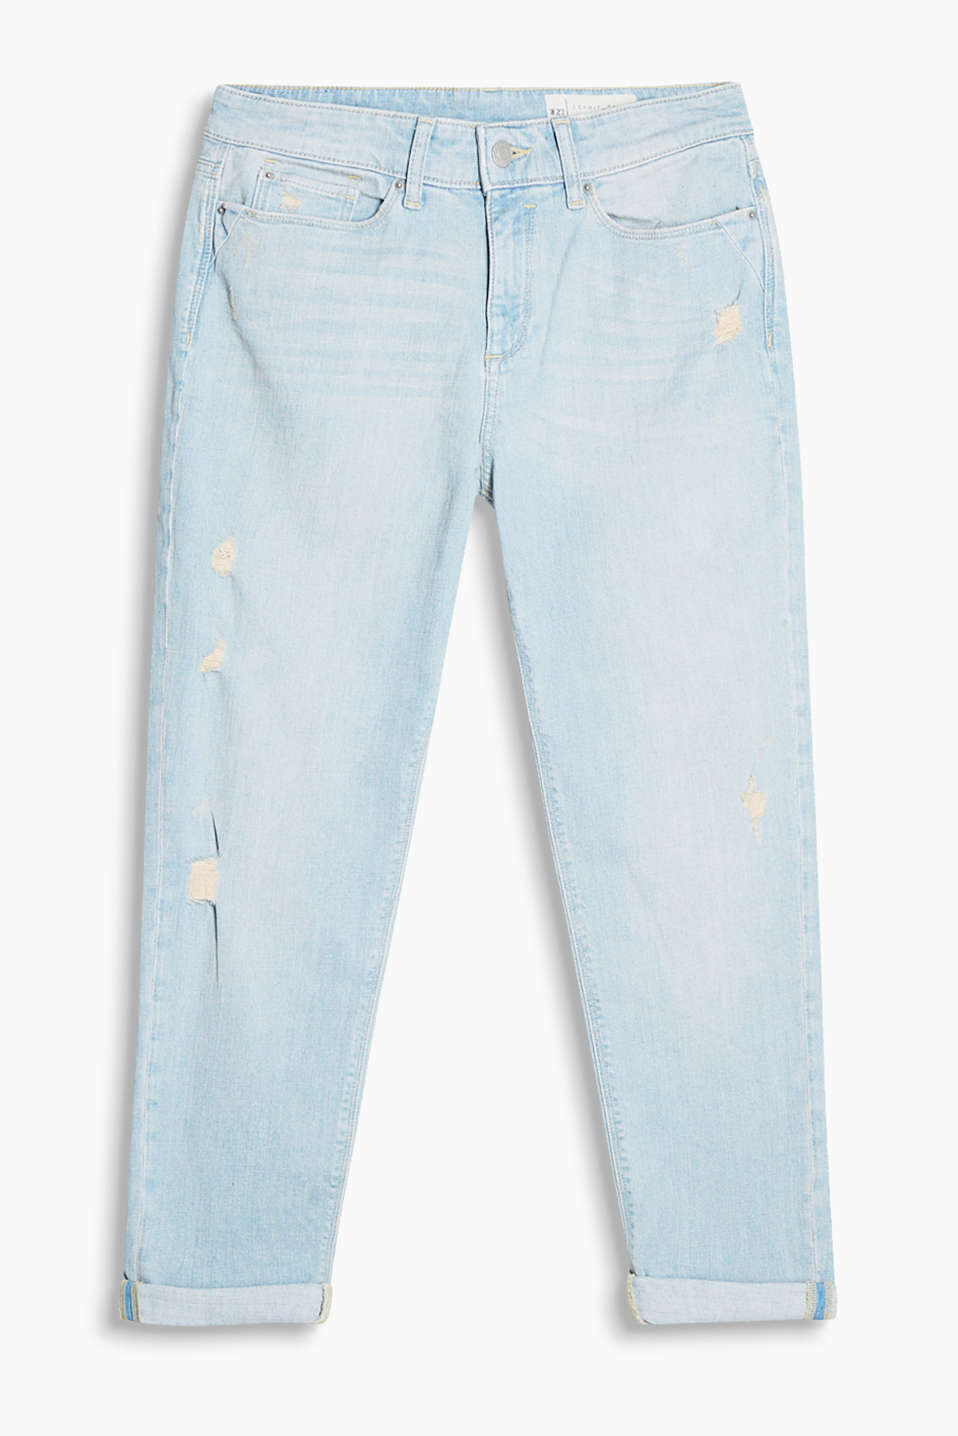 Vintage-style boyfriend jeans with stretch for comfort in a pale summery wash